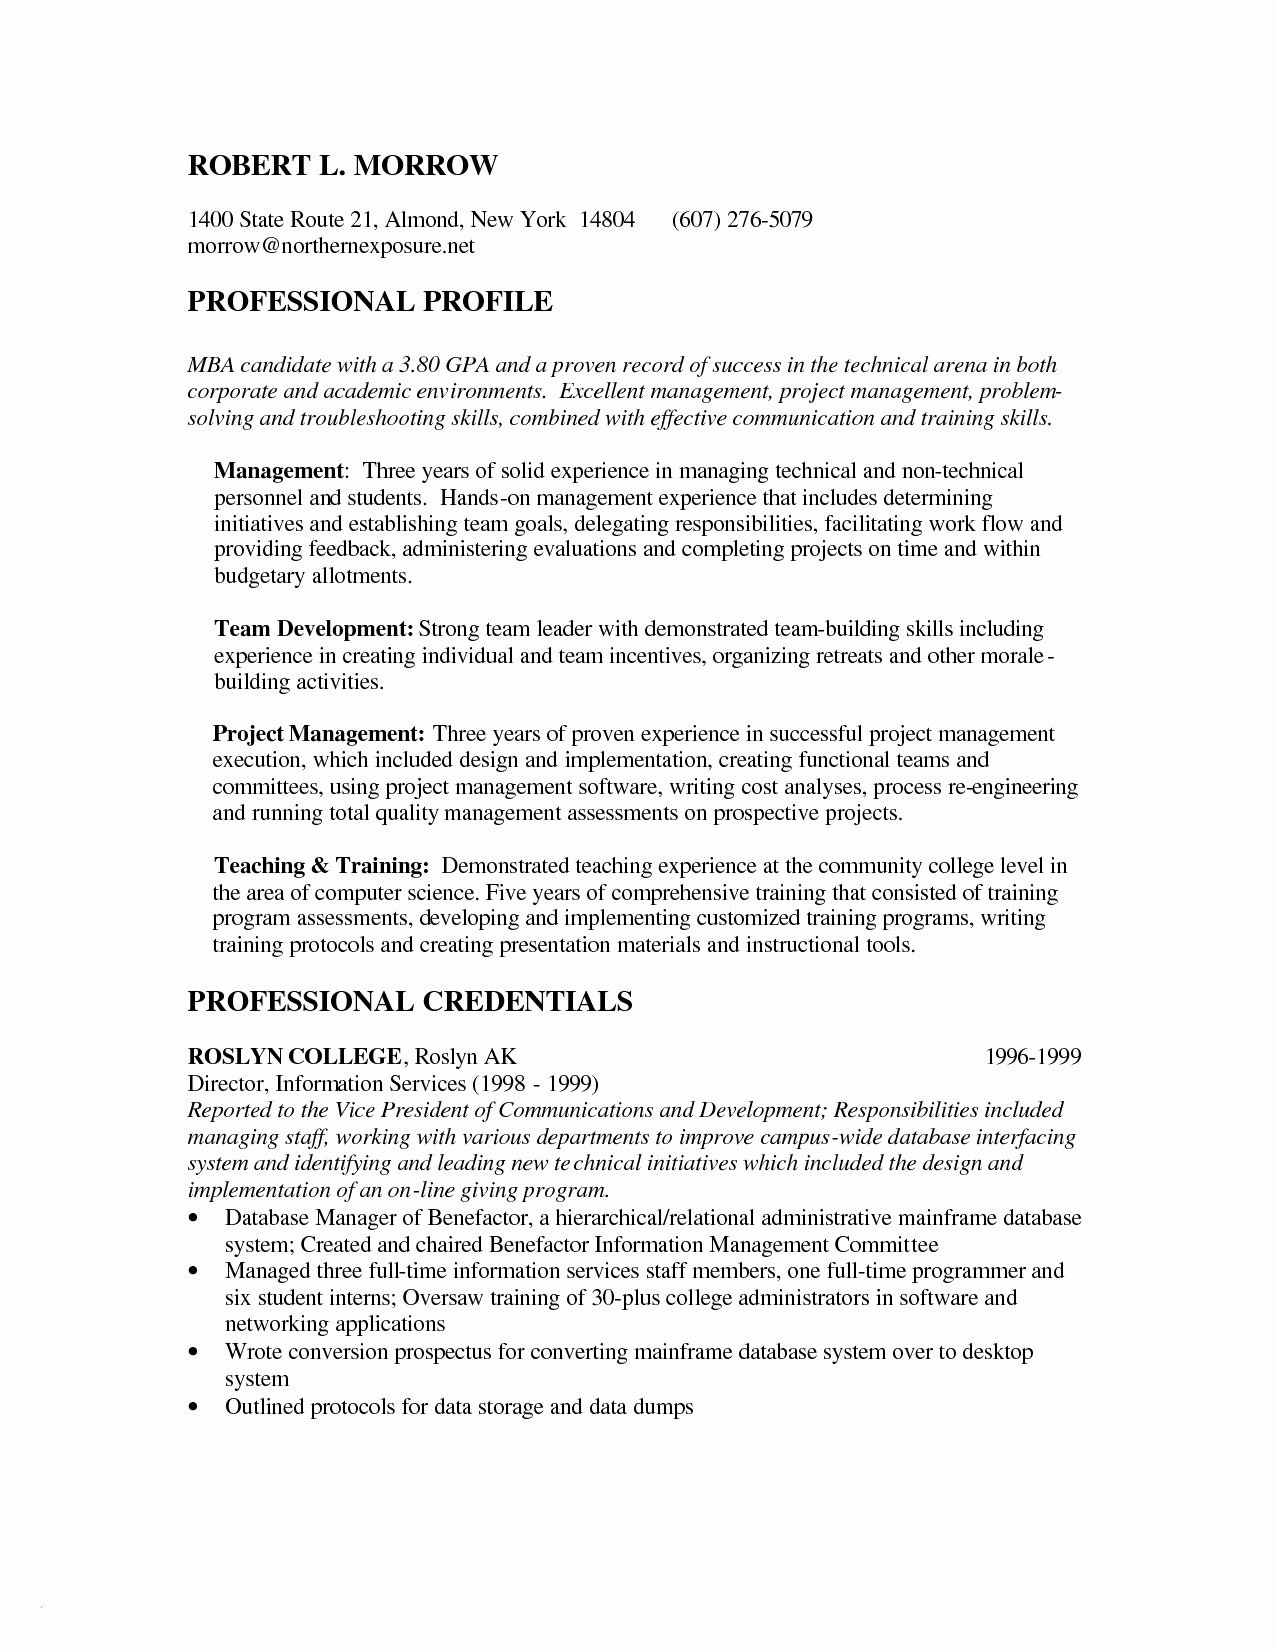 Hbs Resume Template - Mba Application Resume Template Best Mba Resume Template